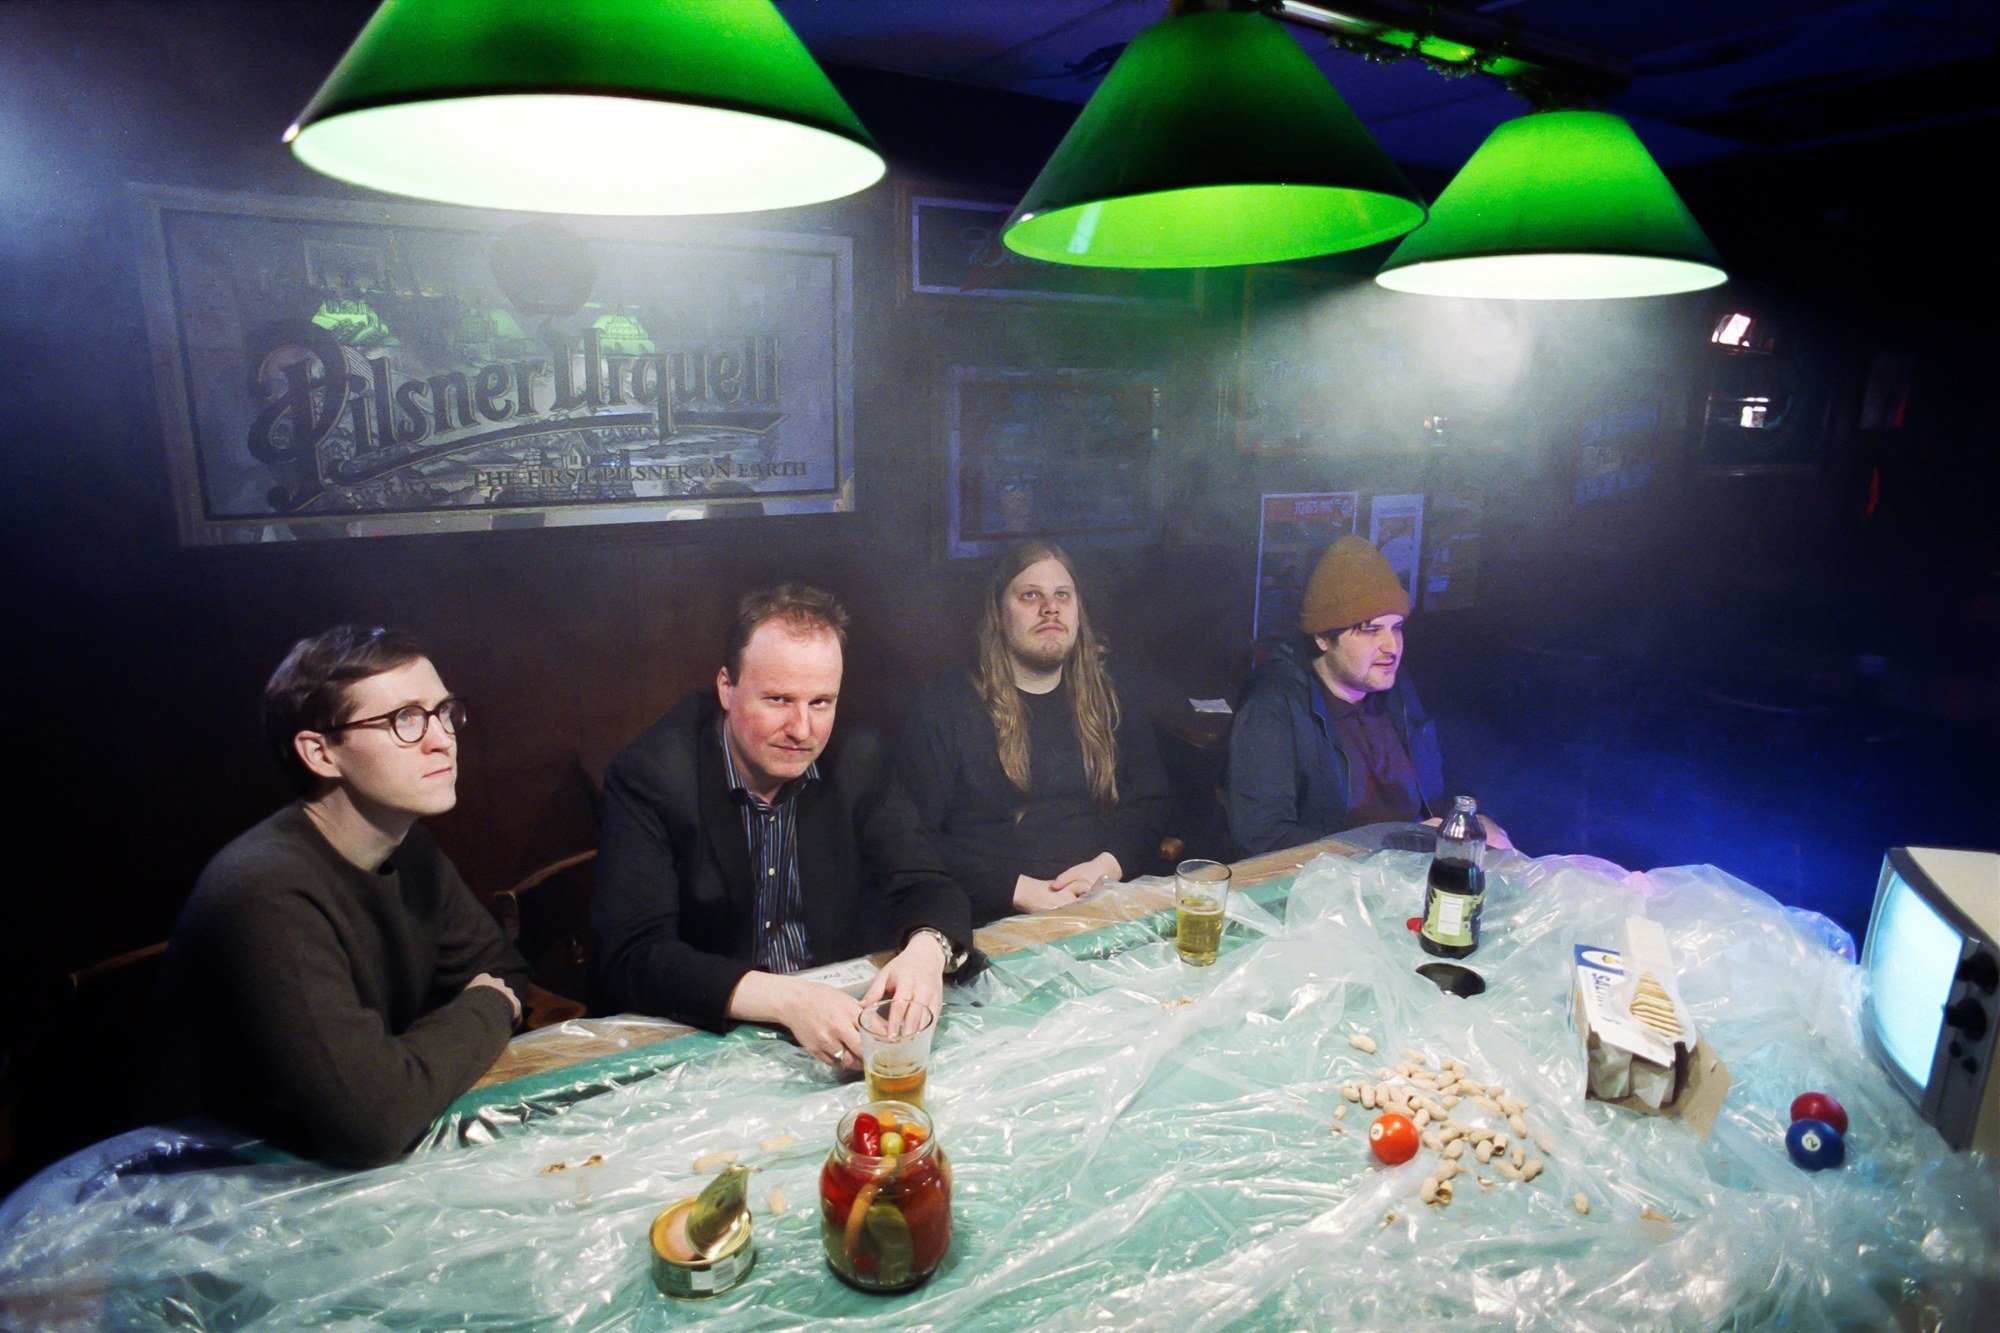 Protomartyr announce new album 'Ultimate Success Today' – hear its furious first single 'Processed By The Boys'